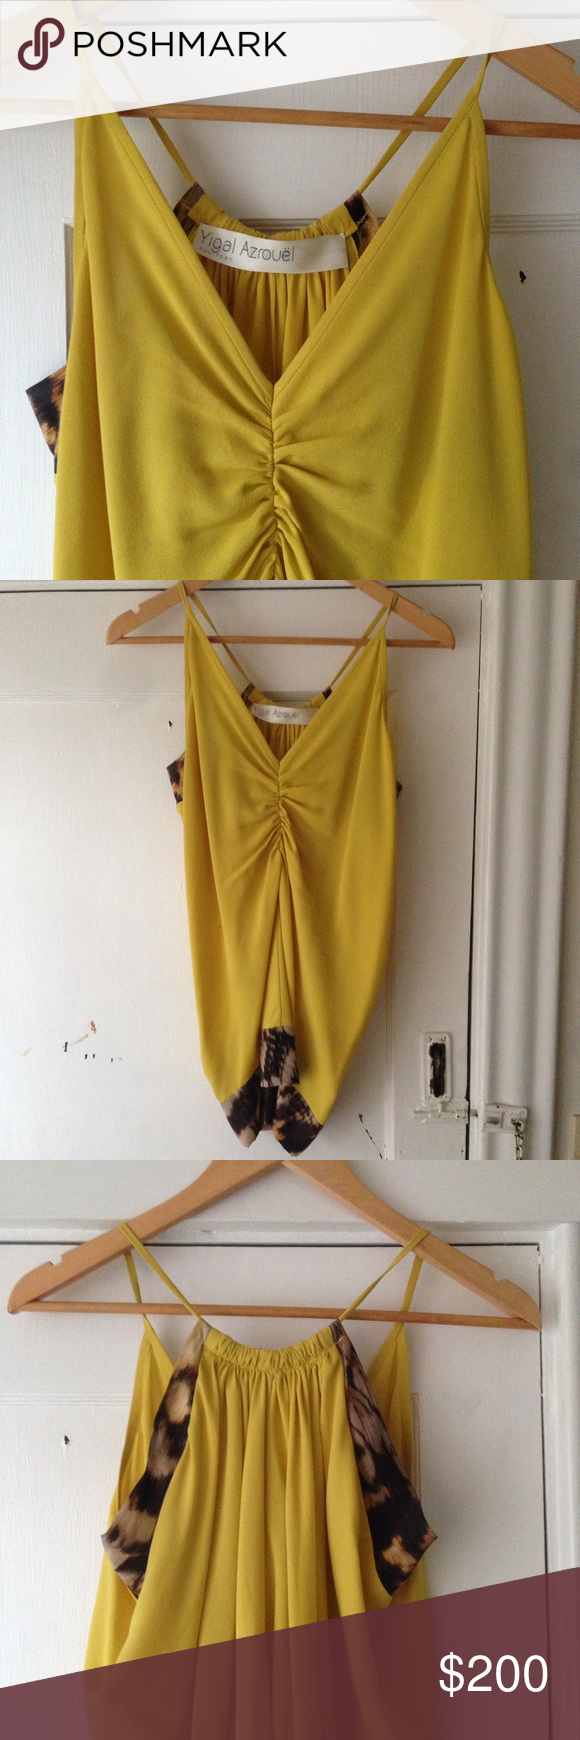 Yigal Azrouel Silk Tank 100% silk tank from designer Yigal Azrouel. Low V neck with print detail on bottom hemline and under arms. In pristine condition, worn only twice. Can provide additional information upon request! American made, New York based design. Yigal Azrouel Tops Tank Tops